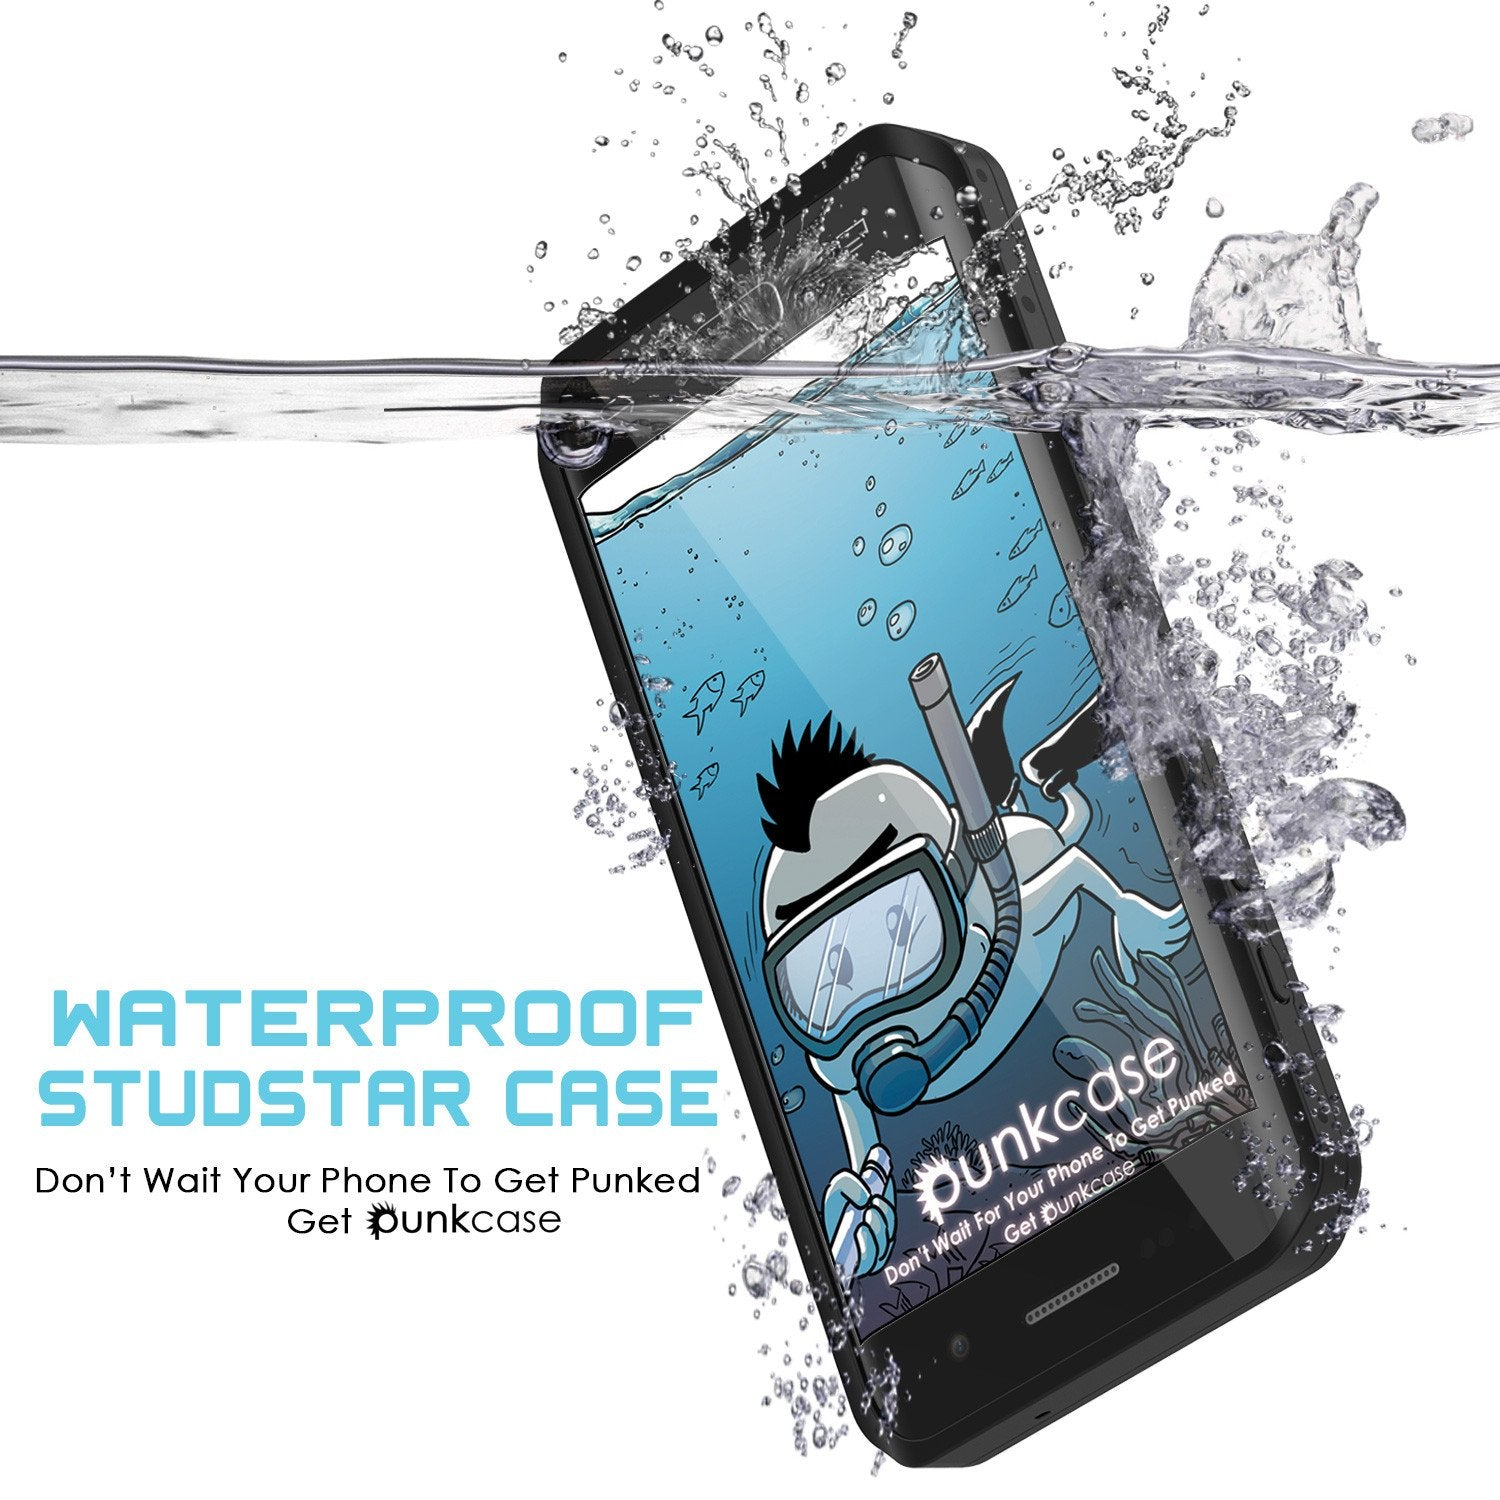 Galaxy S7 EDGE Waterproof Case PunkCase StudStar Black Thin 6.6ft Underwater IP68 Shock/Snow Proof